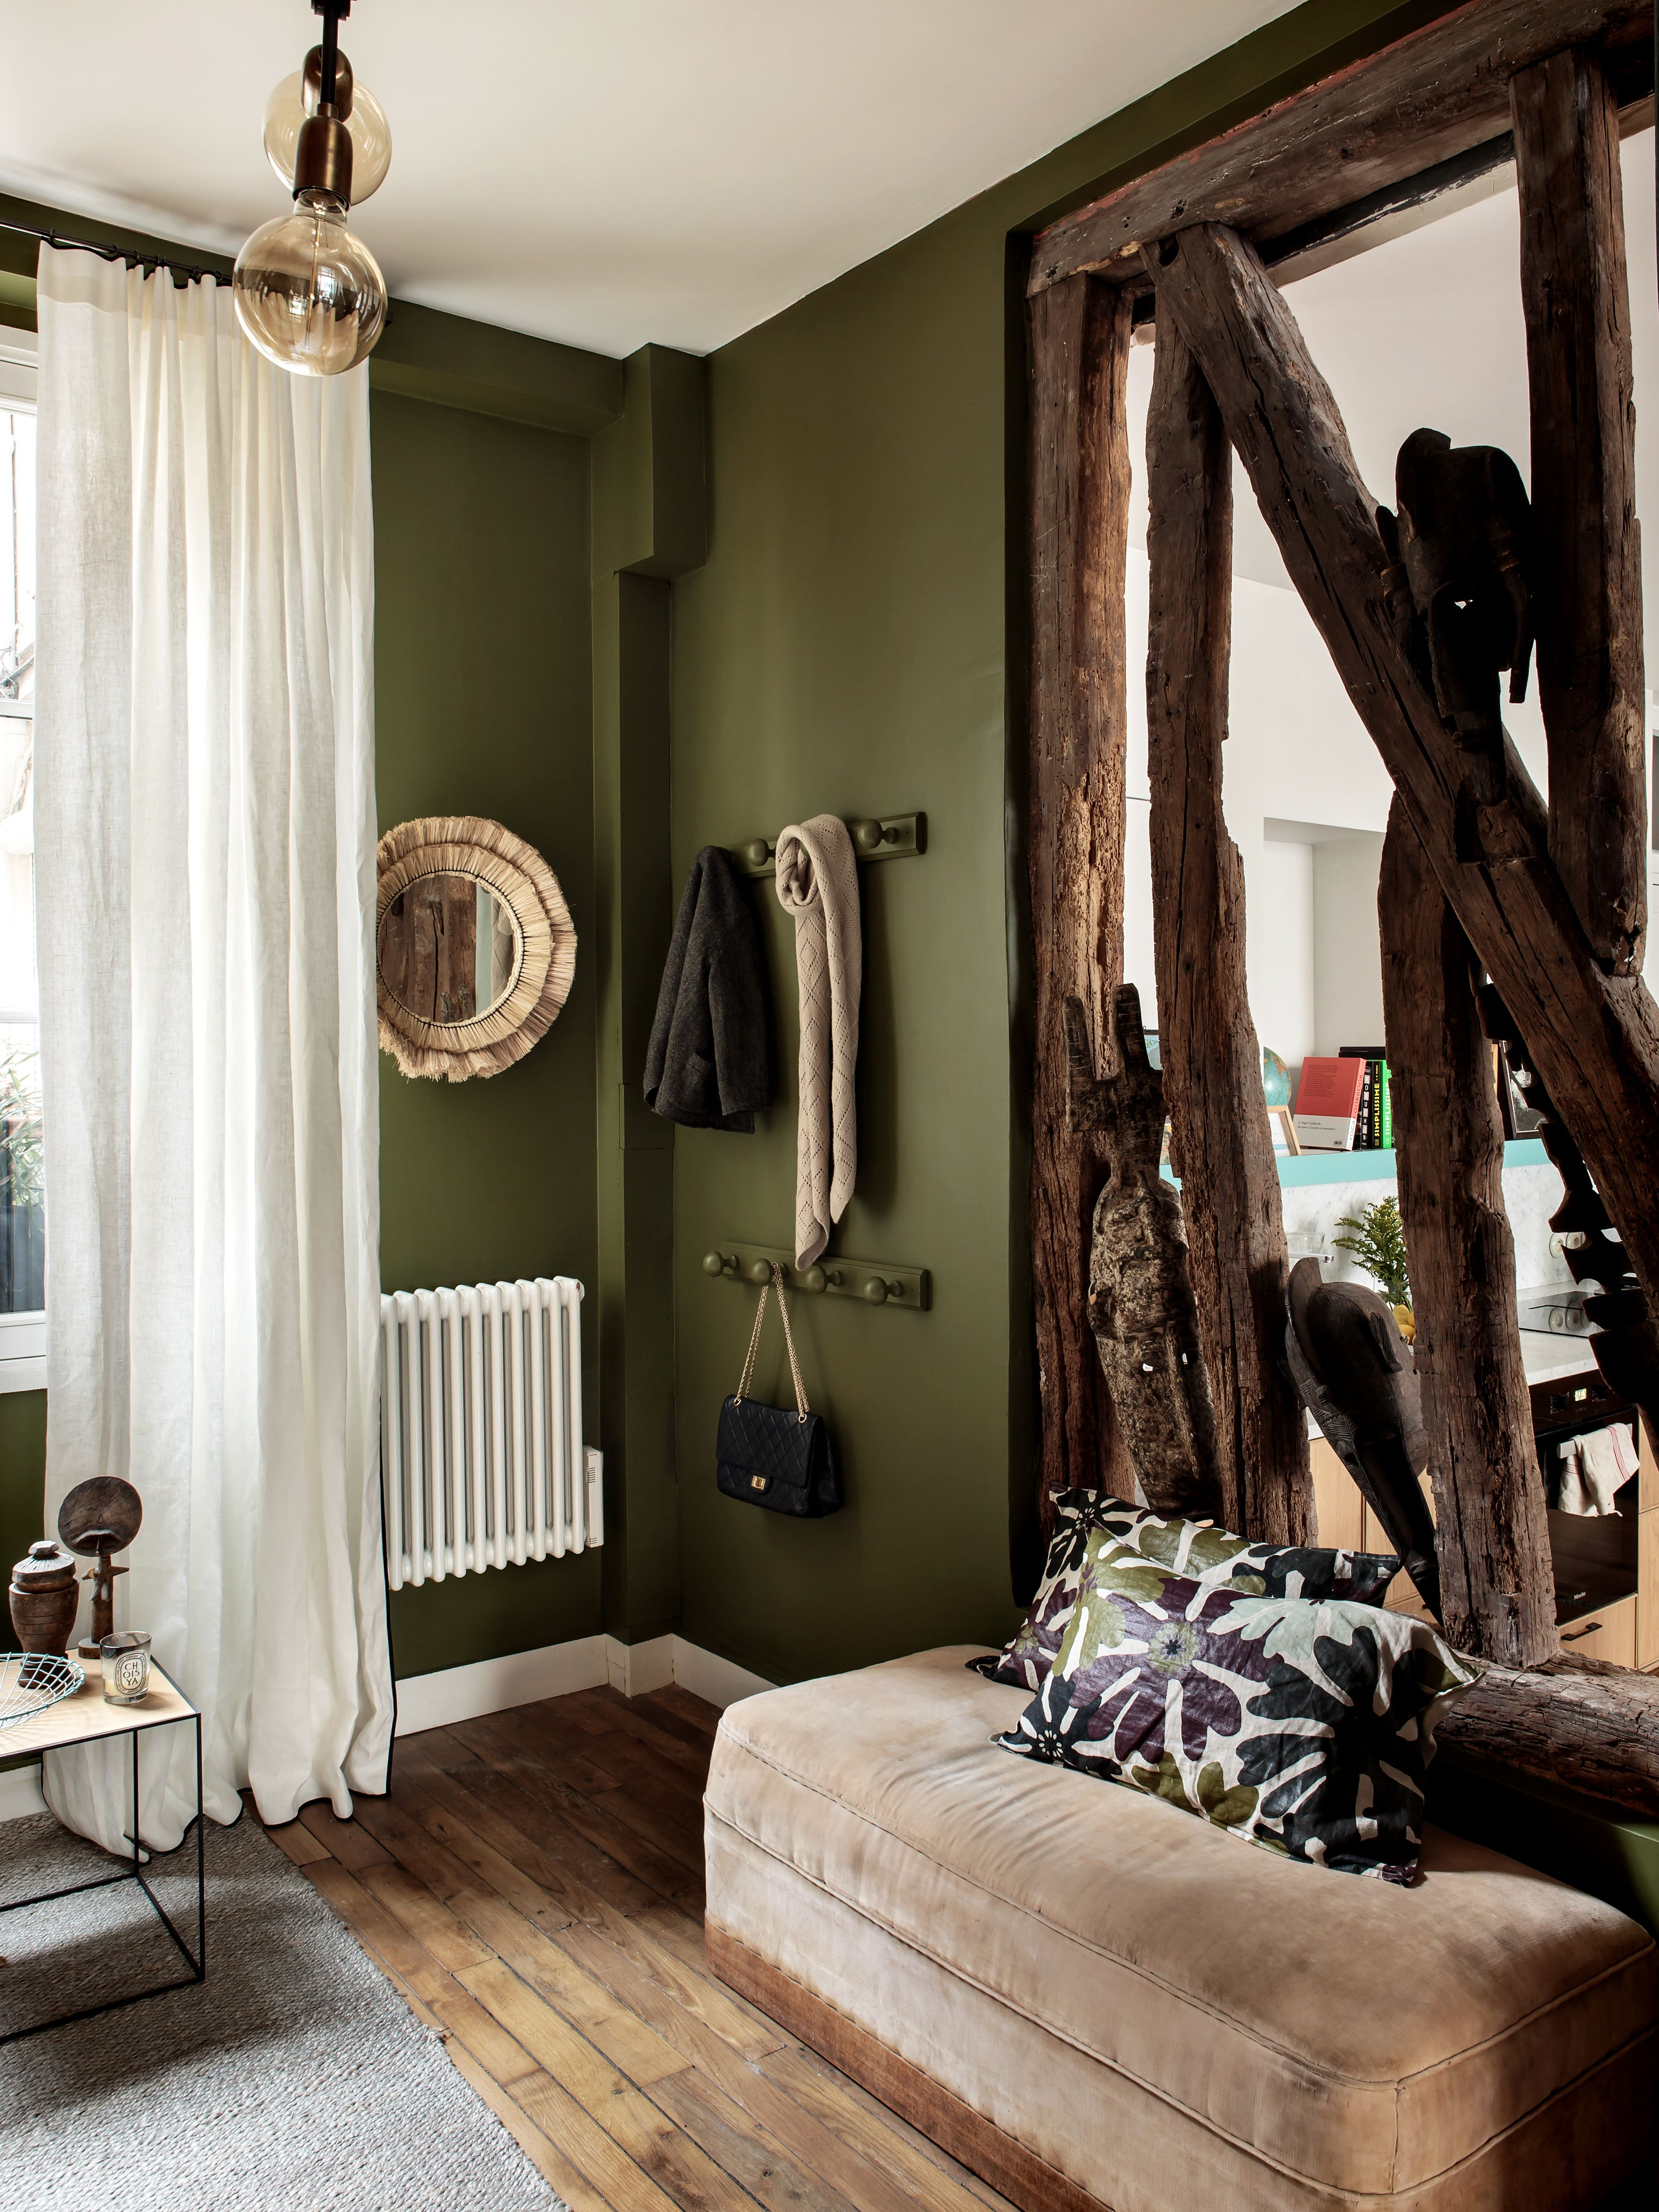 This Living Room Decor Is Painted In Farrow Ball Bancha Interior Architect Camille Hermand P Olive Living Rooms Living Room Wall Color Brown Living Room Olive green and brown living room